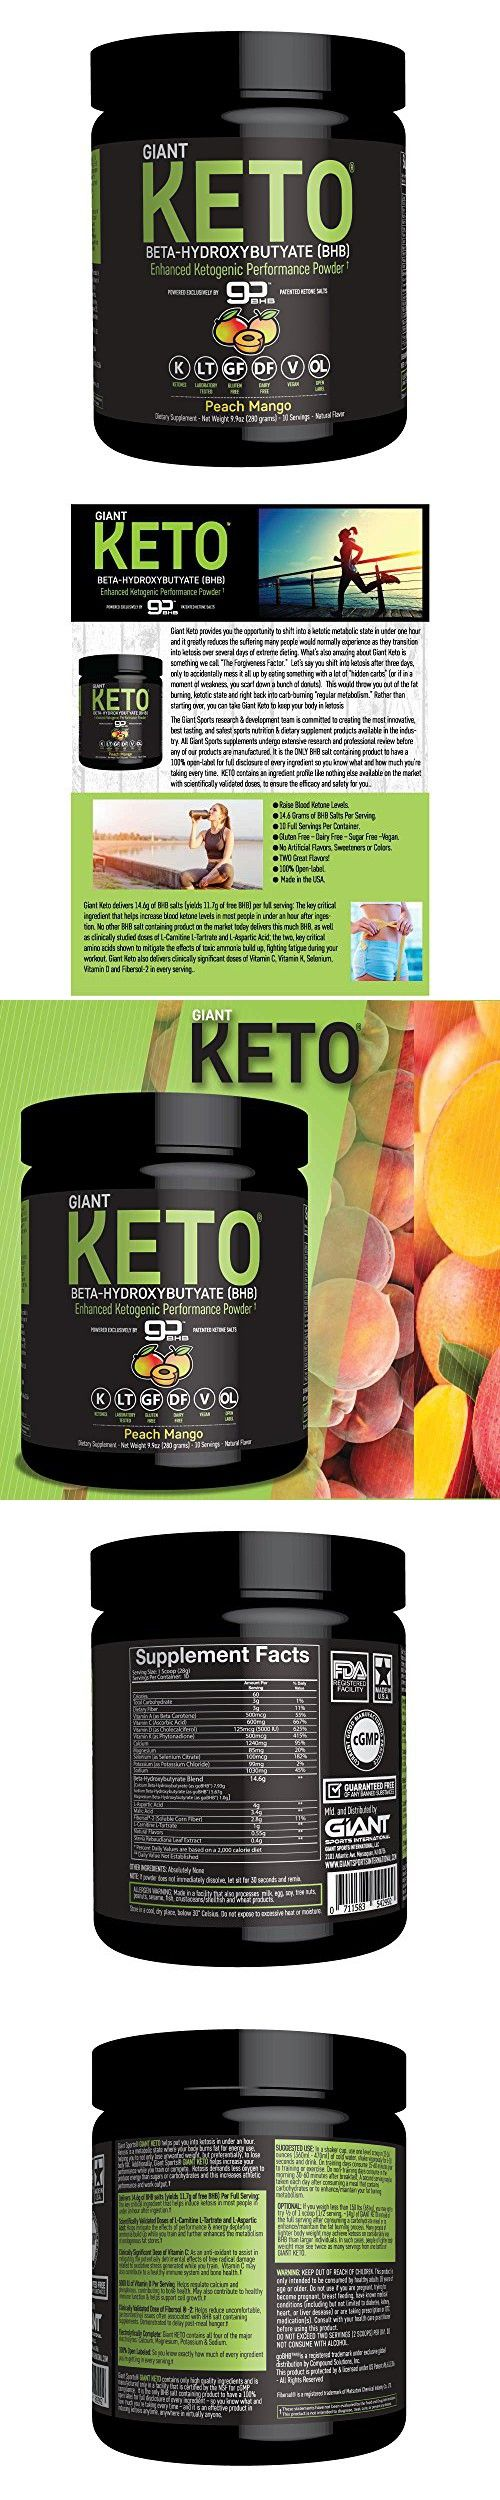 Swisse Raspberry Extract Ketones 60 Vege Capsules Giant Keto Exogenous Supplement Beta Hydroxybutyrate Powder Designed To Support Your